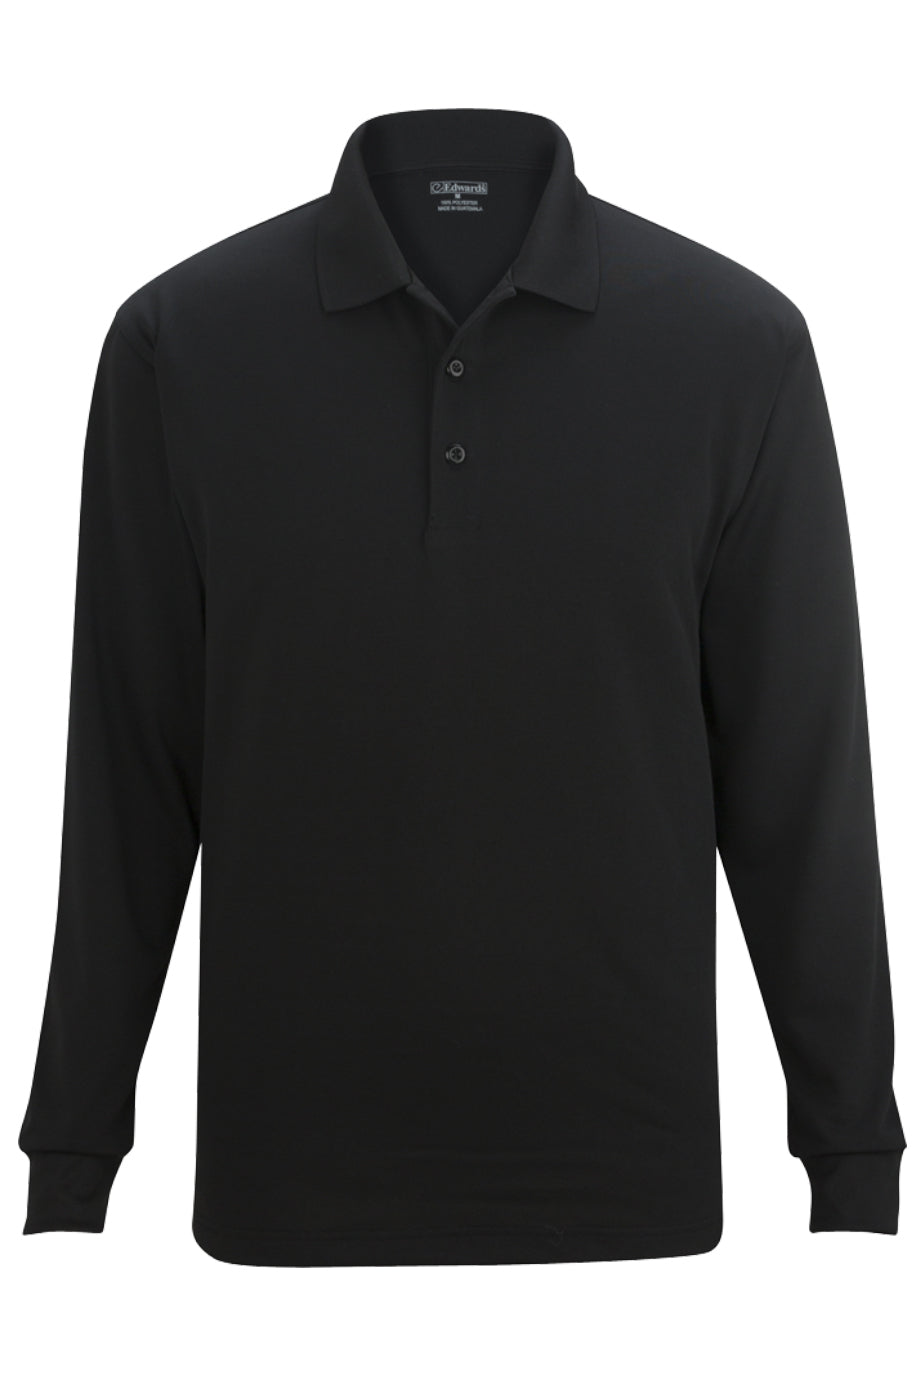 Black Edwards Unisex Snag Proof Long Sleeve Polo